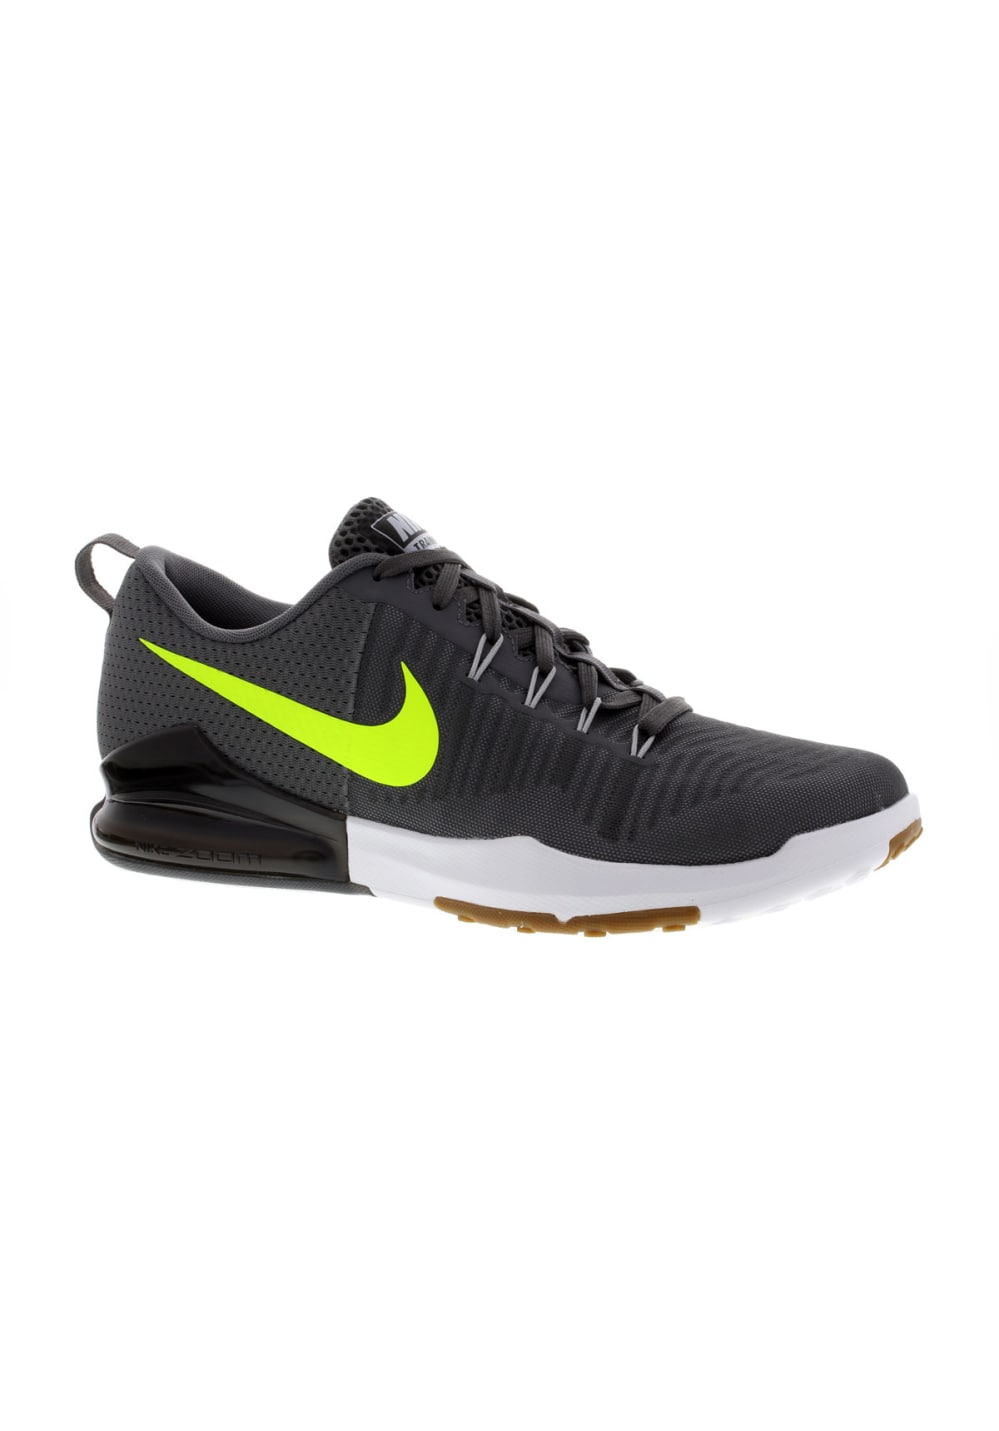 1a48e0196c Nike Zoom Train Action - Chaussures fitness pour Homme - Gris